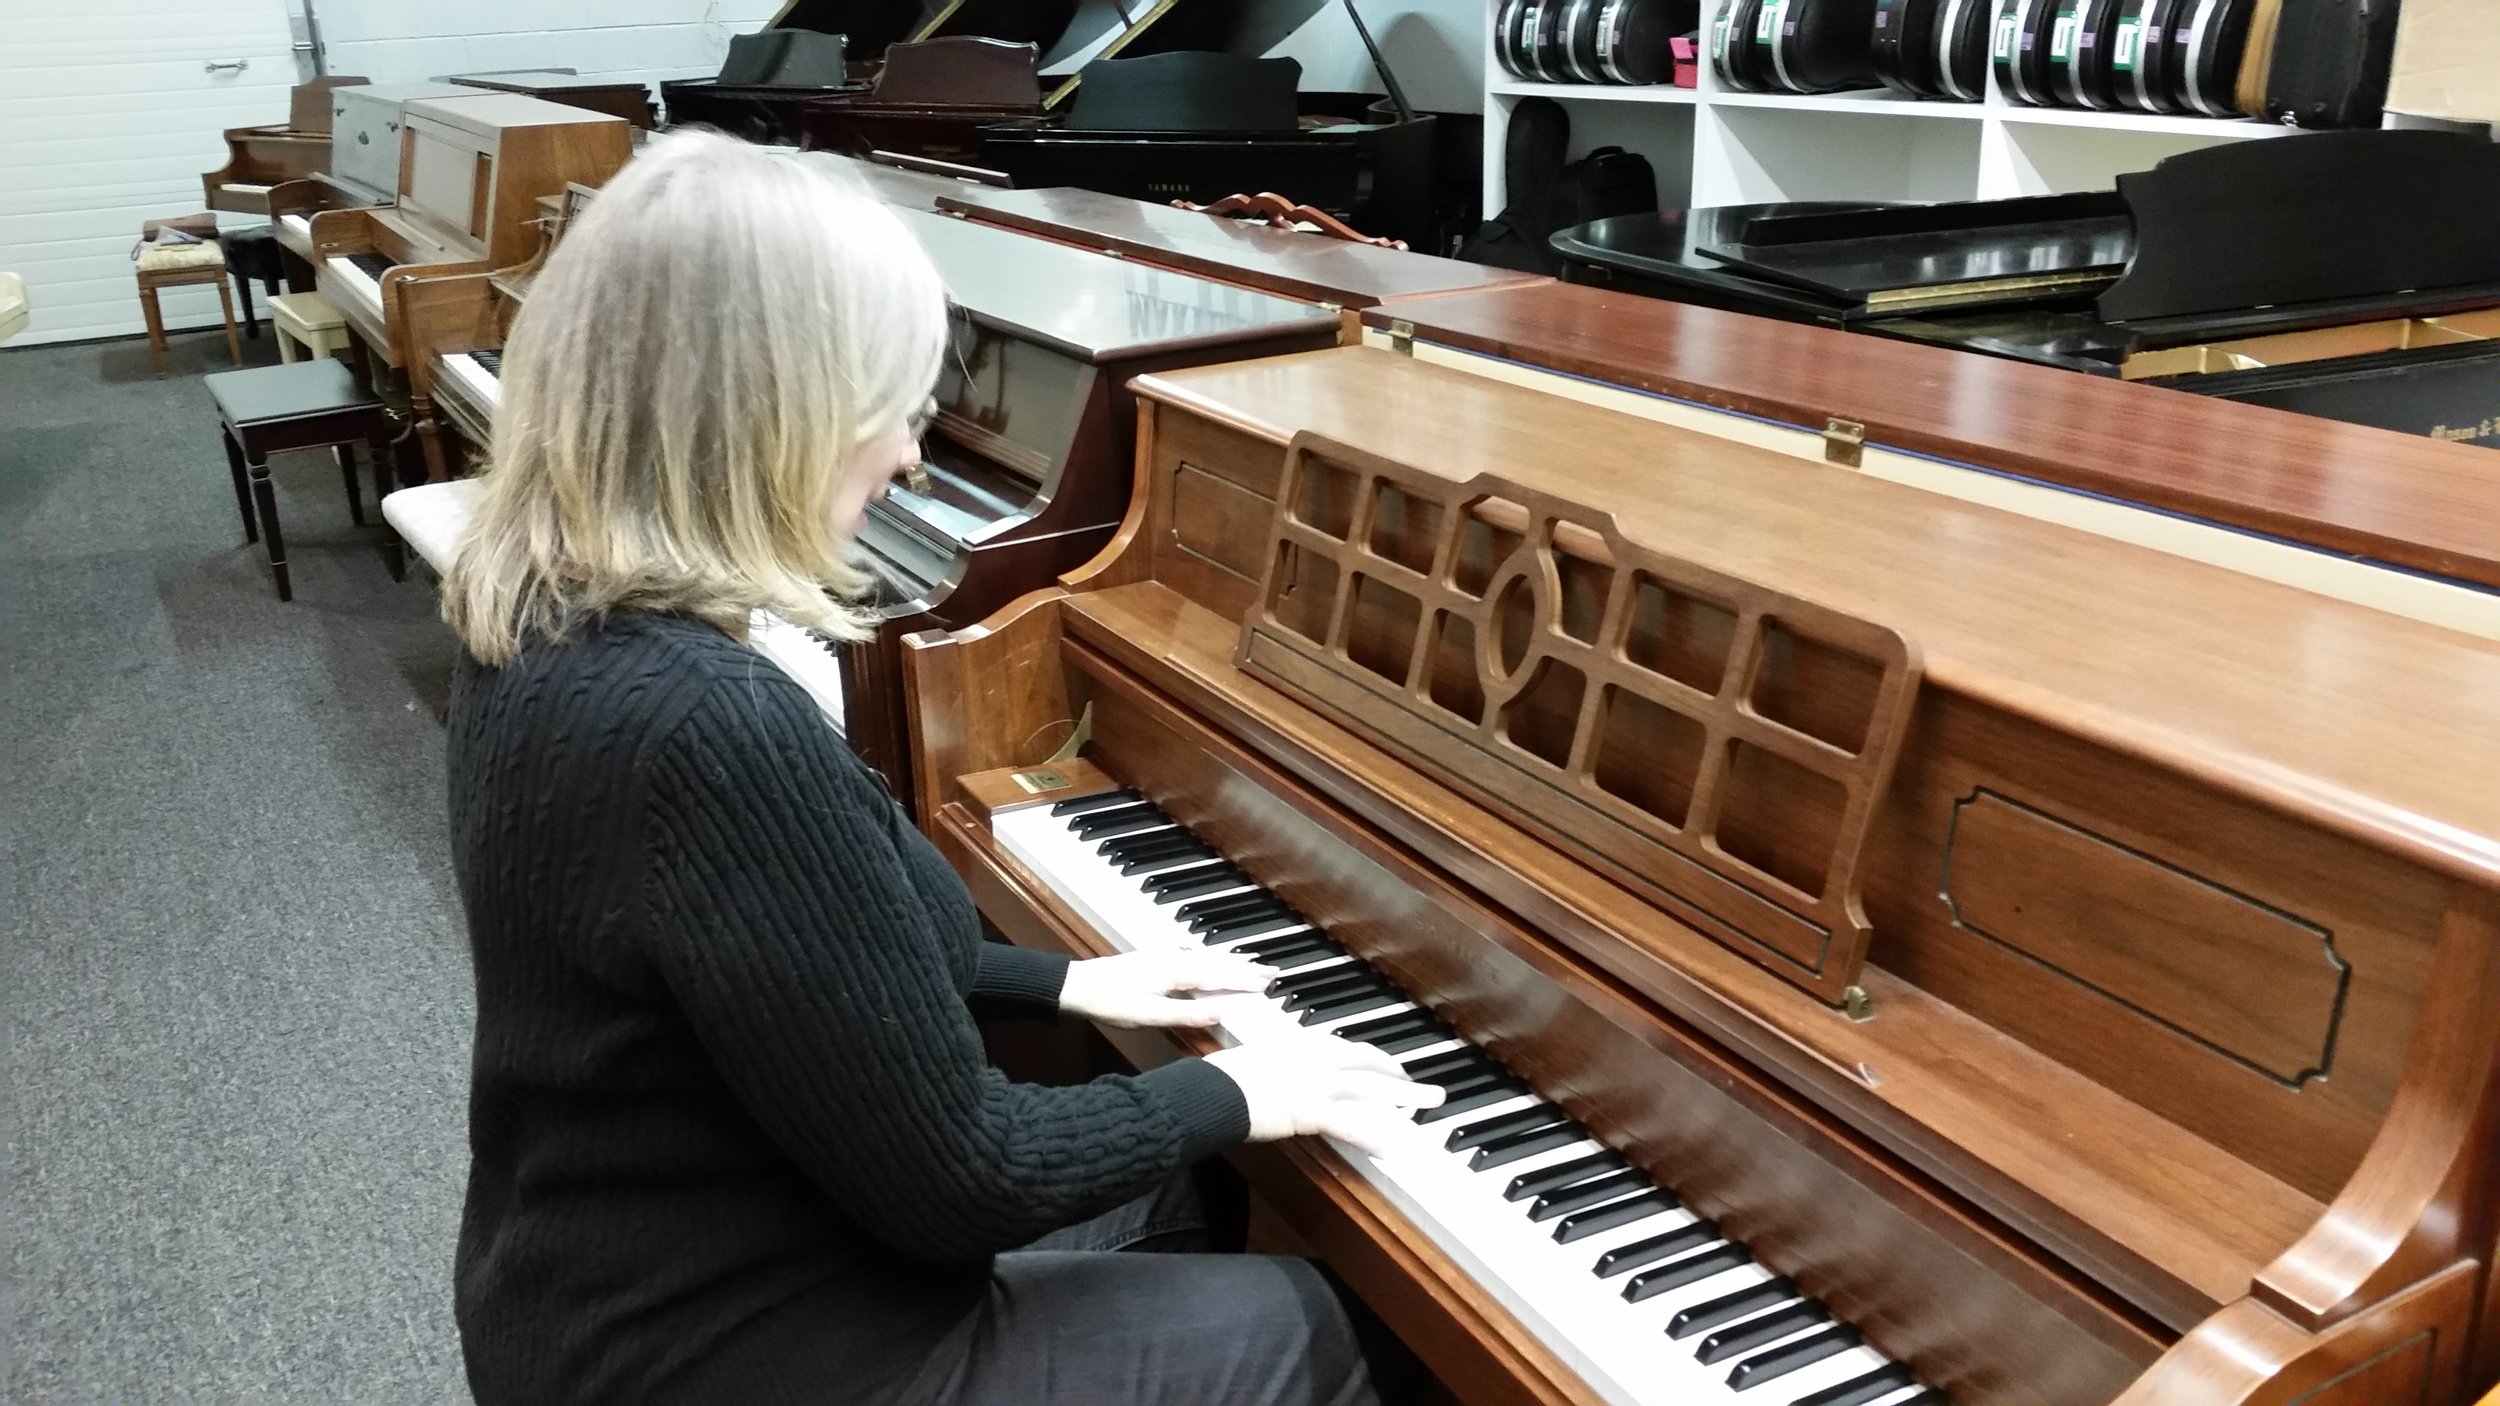 Me picking out my new piano